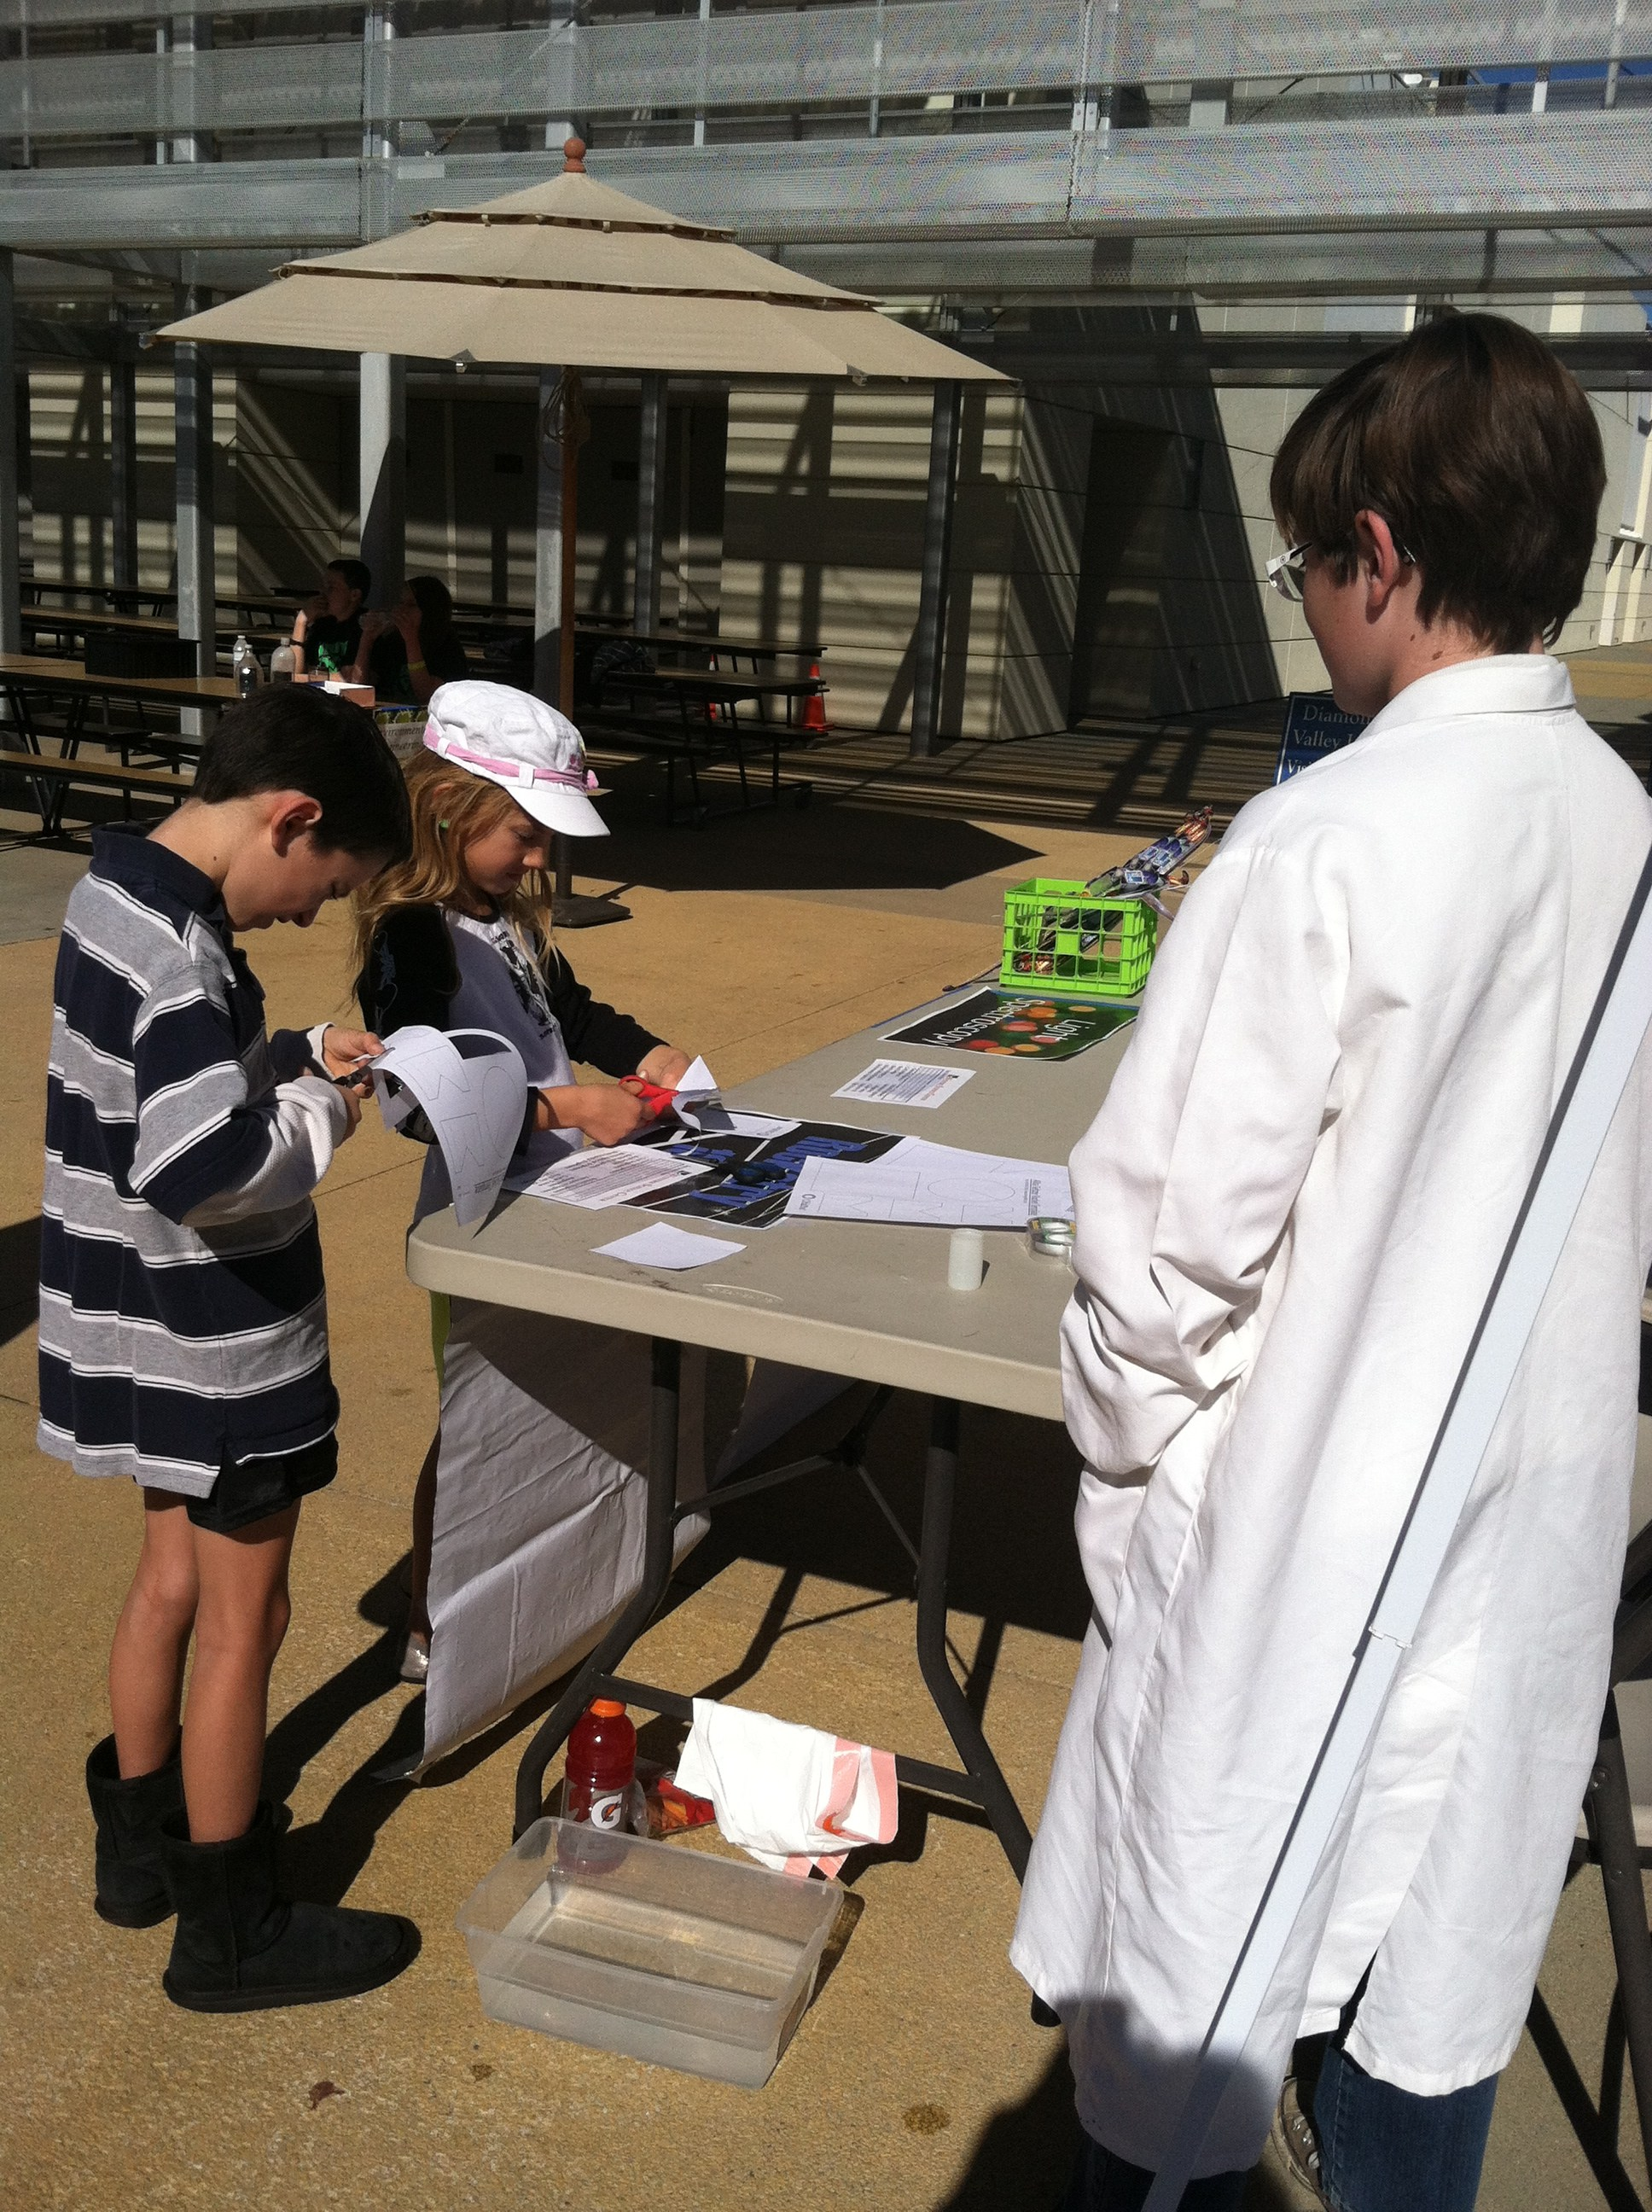 The 7th grade Maven Lab students volunteered to help out this past Saturday for the Science Saturday sponsored by the Western Science Center